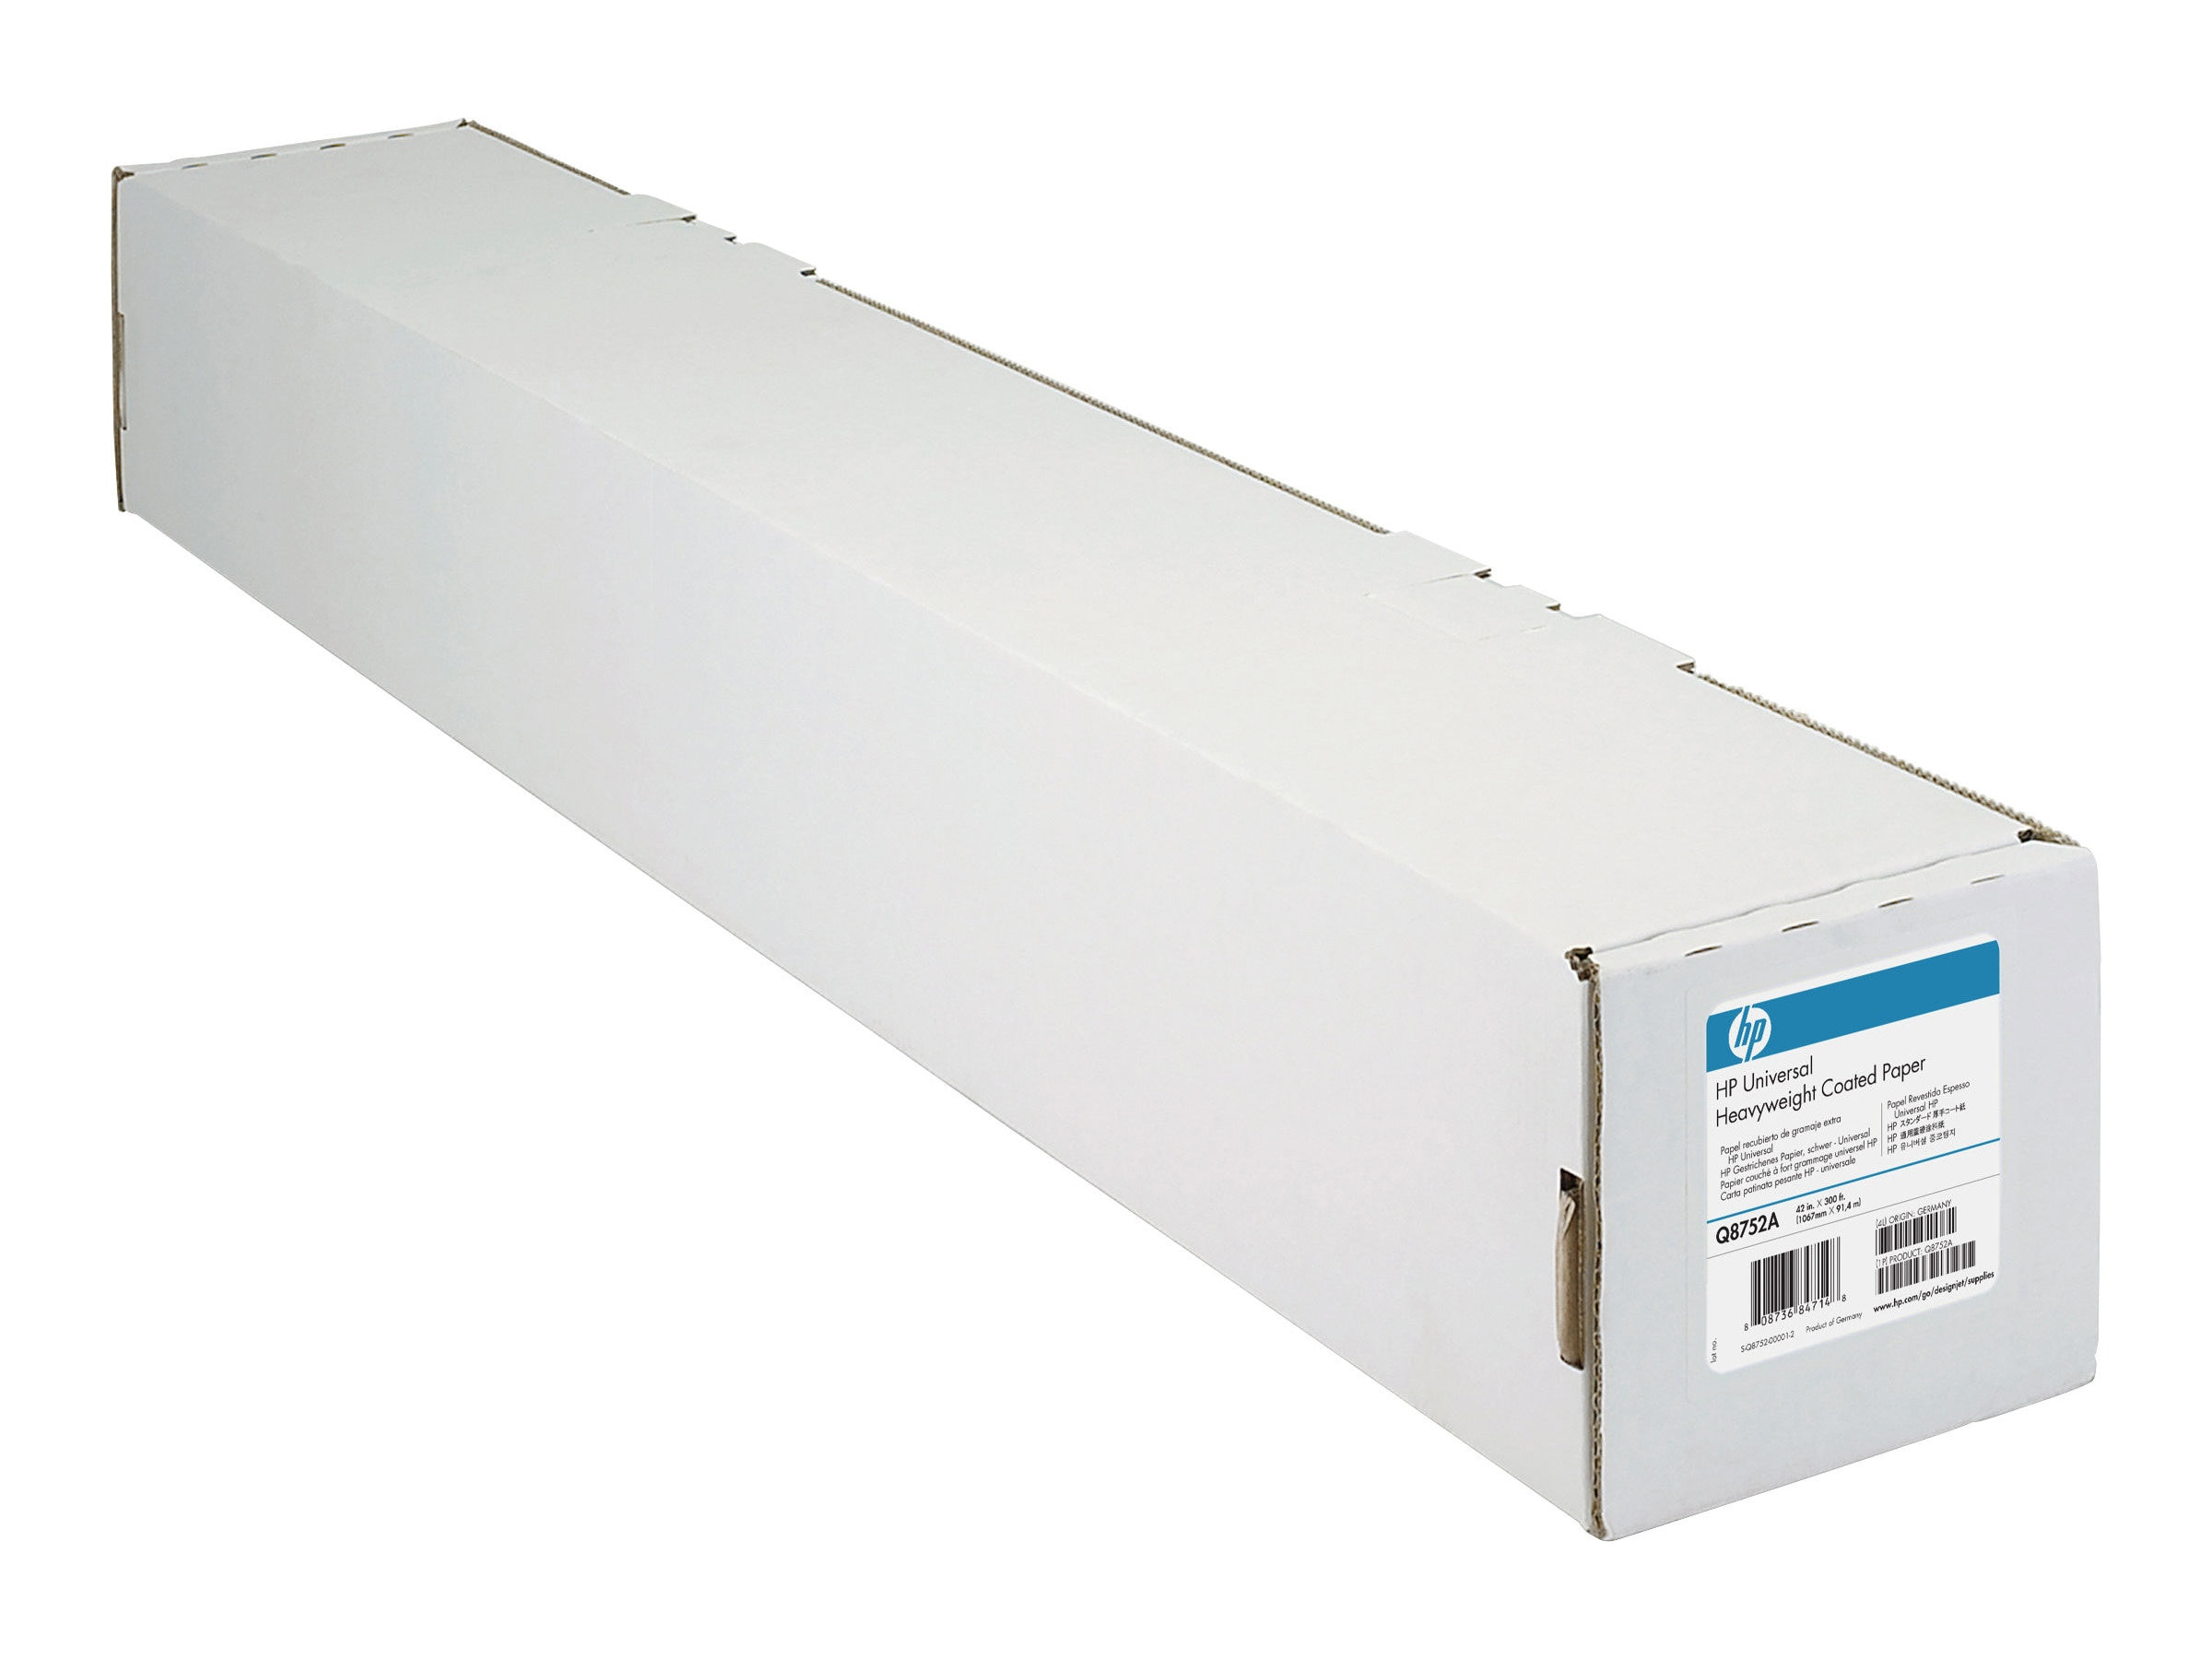 HP 36in x 300ft Coated Paper for DesignJet Printers, C6980A, 185966, Paper, Labels & Other Print Media